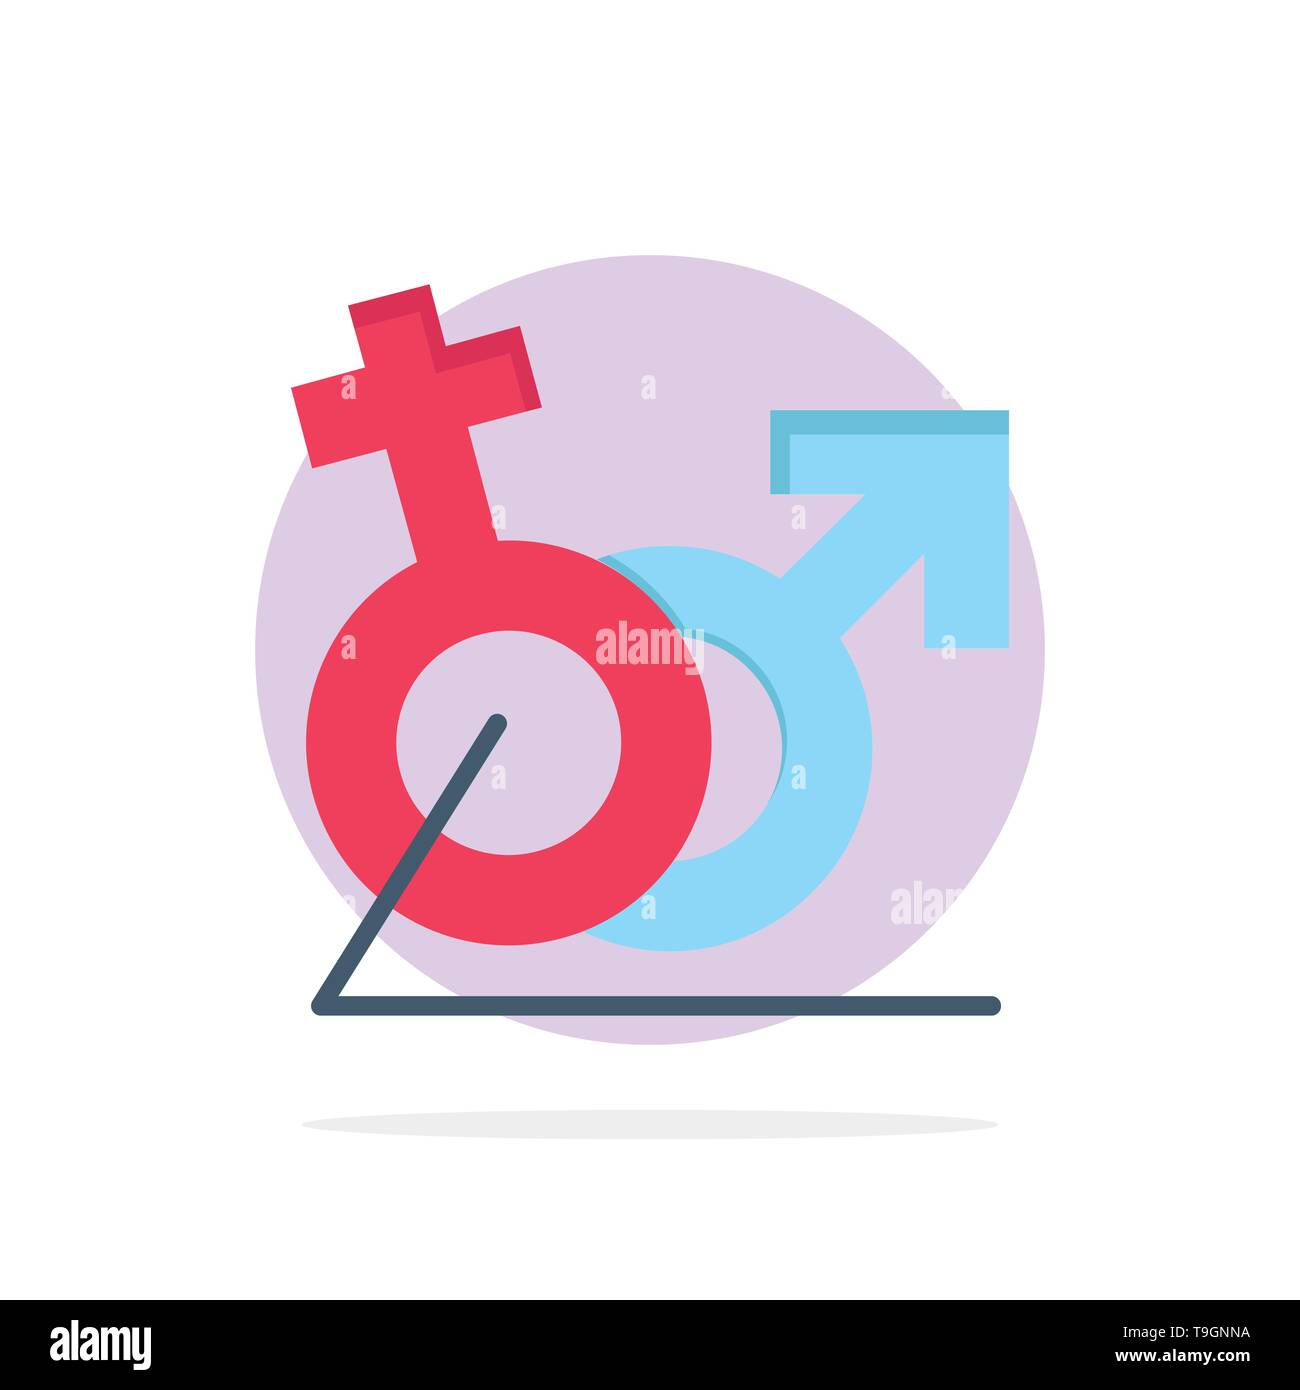 Men, Women, Sign, Gander, Identity Abstract Circle Background Flat color Icon - Stock Image